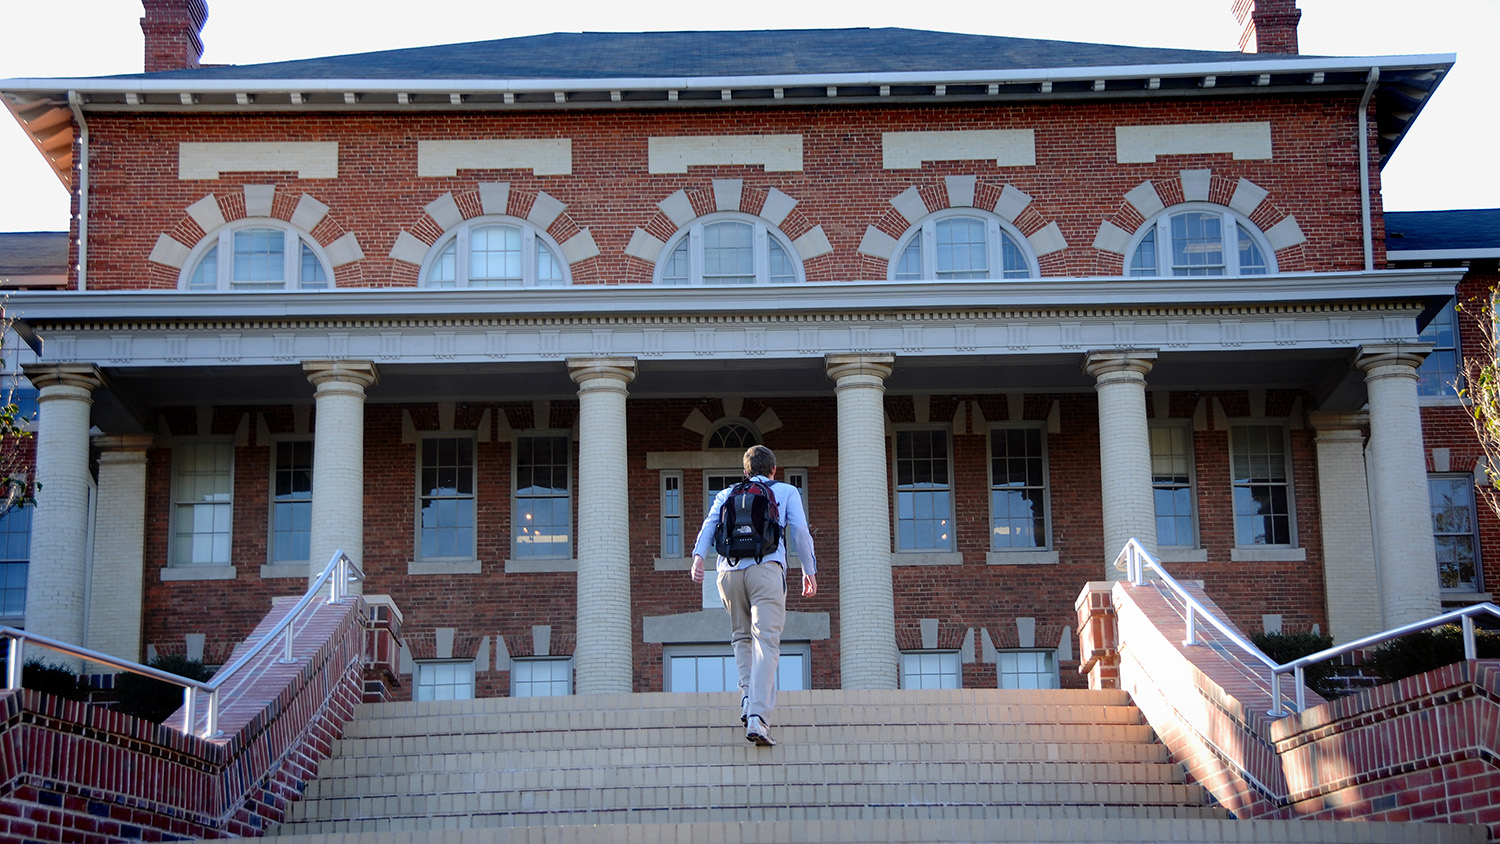 A student walks up the stairs of the 1911 Building